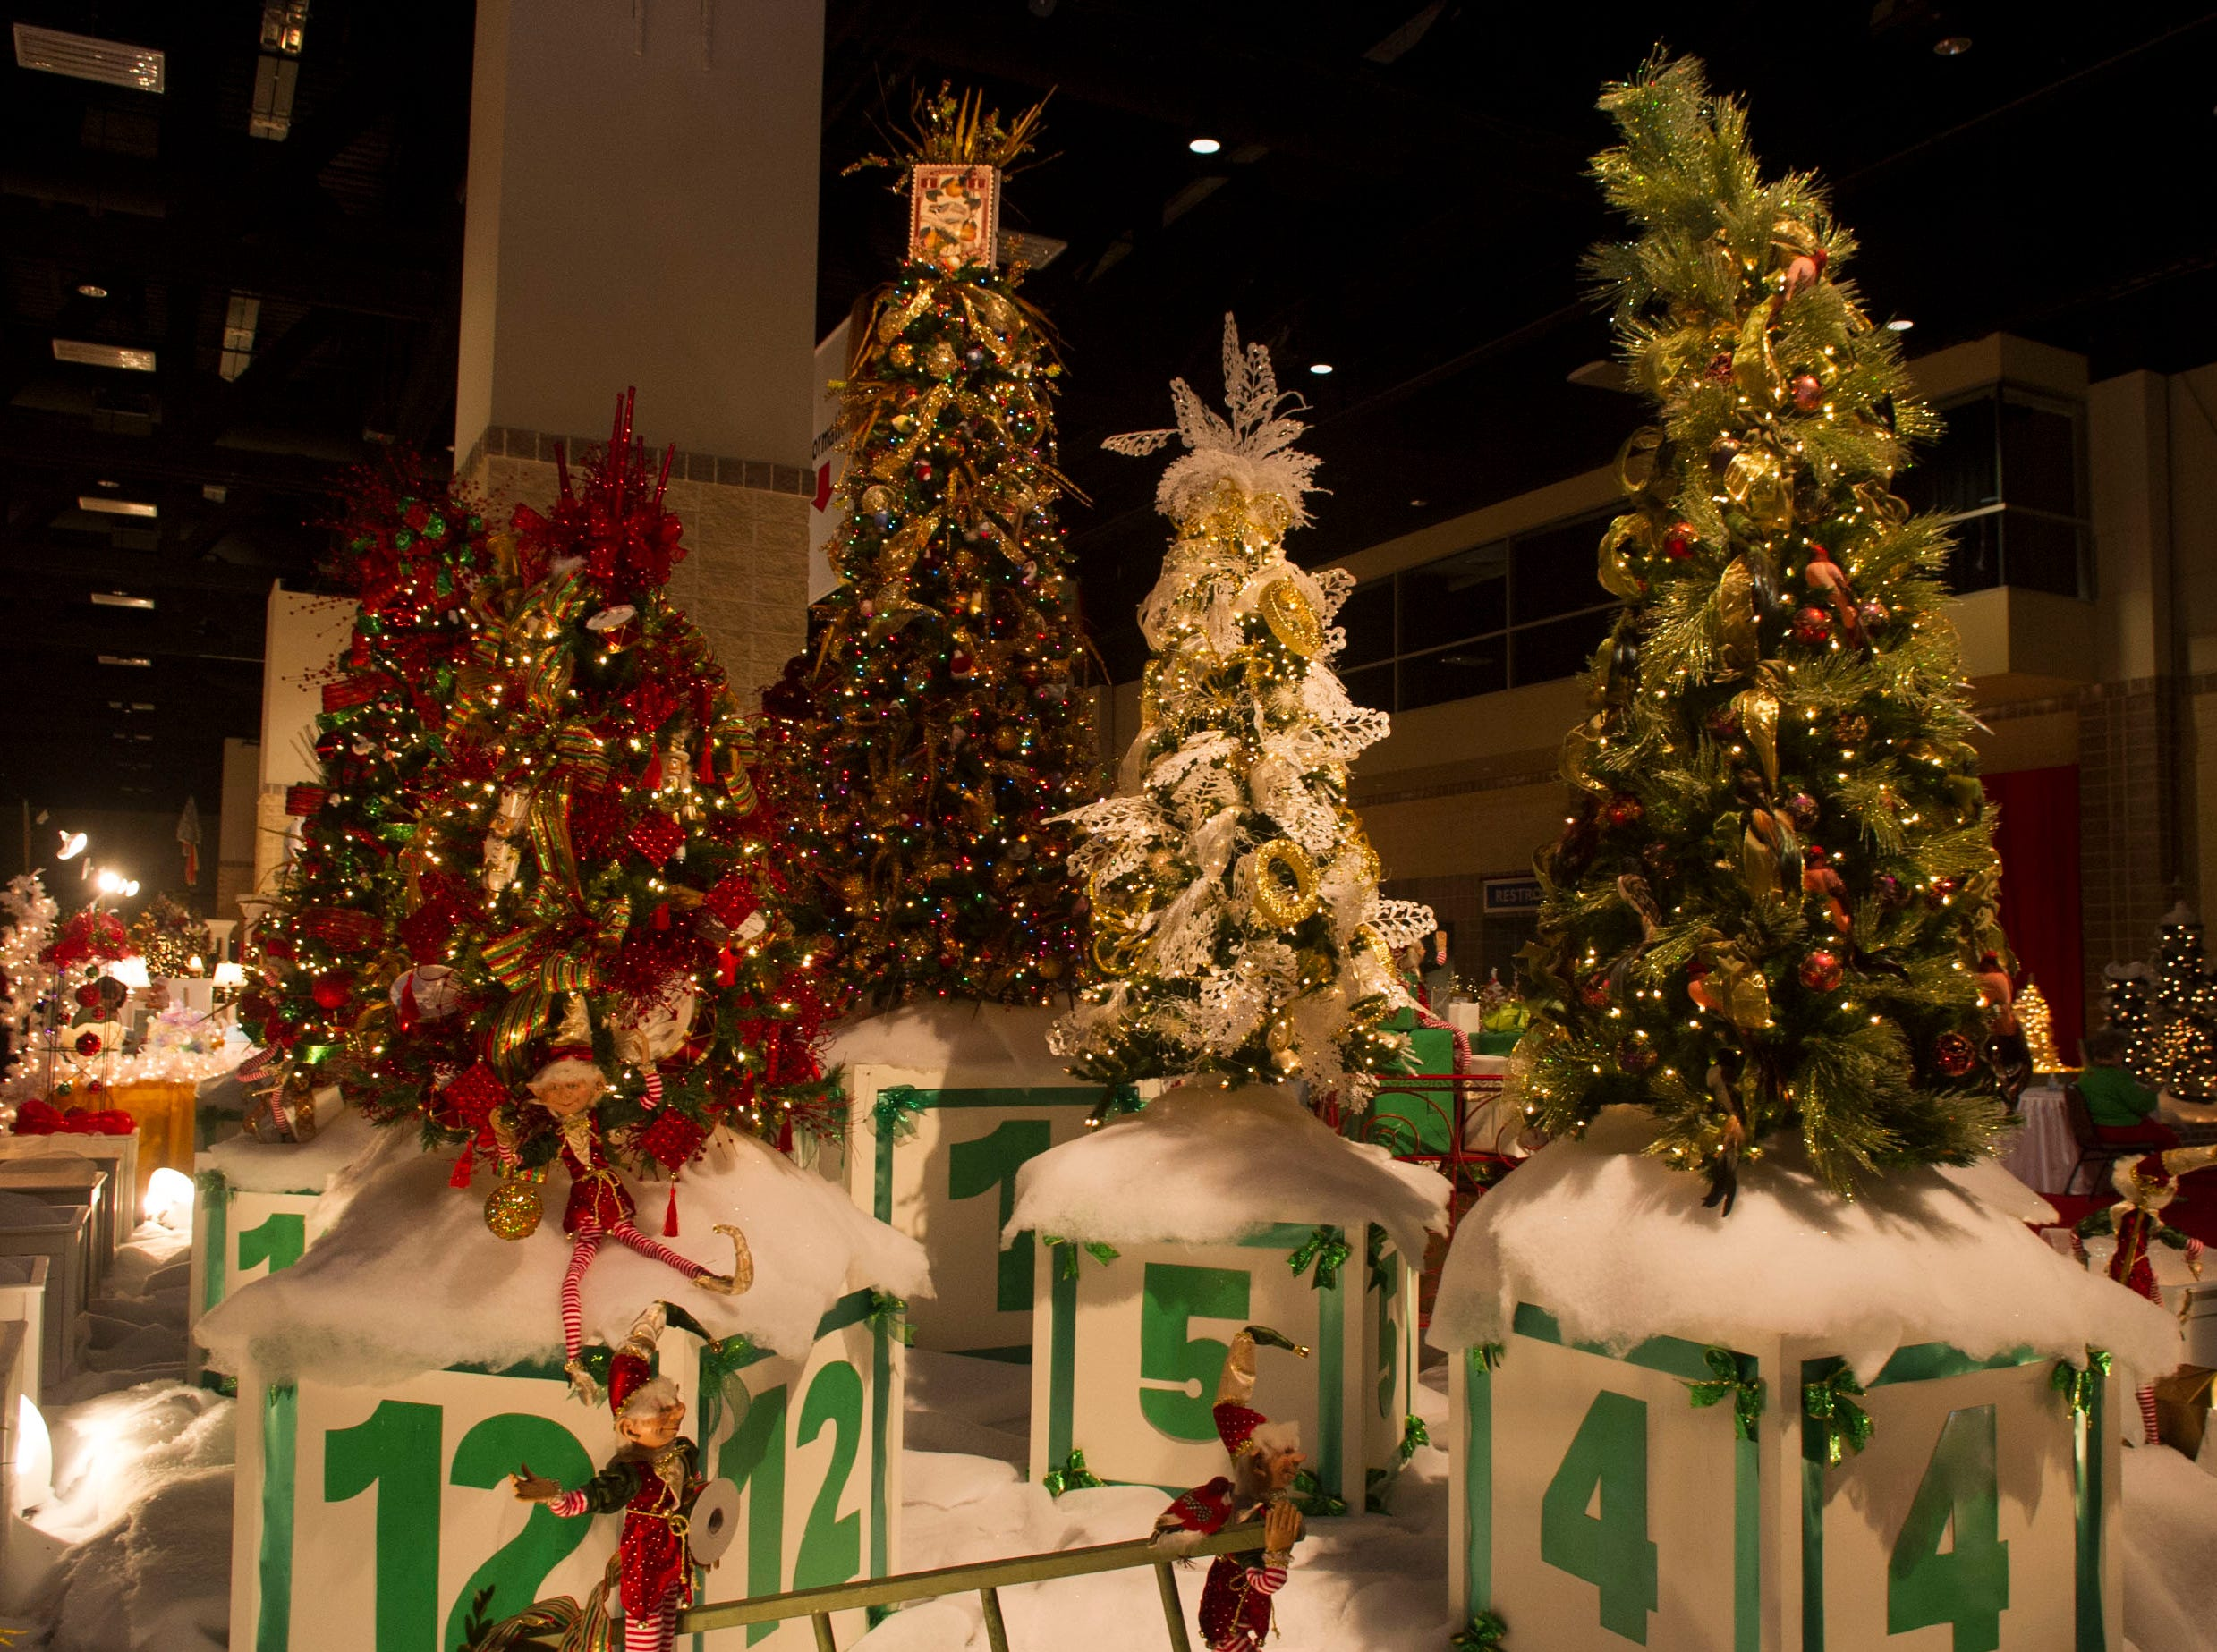 The Twelve Days of Christmas tree display.The 28th Fantasy of Trees once again transforms the downtown Knoxville Convention Center into a winter wonderland of decorated trees, gingerbread houses, holiday shops and children's activities, helping move Thanksgiving week into the Christmas season. ( J. MILES CARY/NEWS SENTINEL )